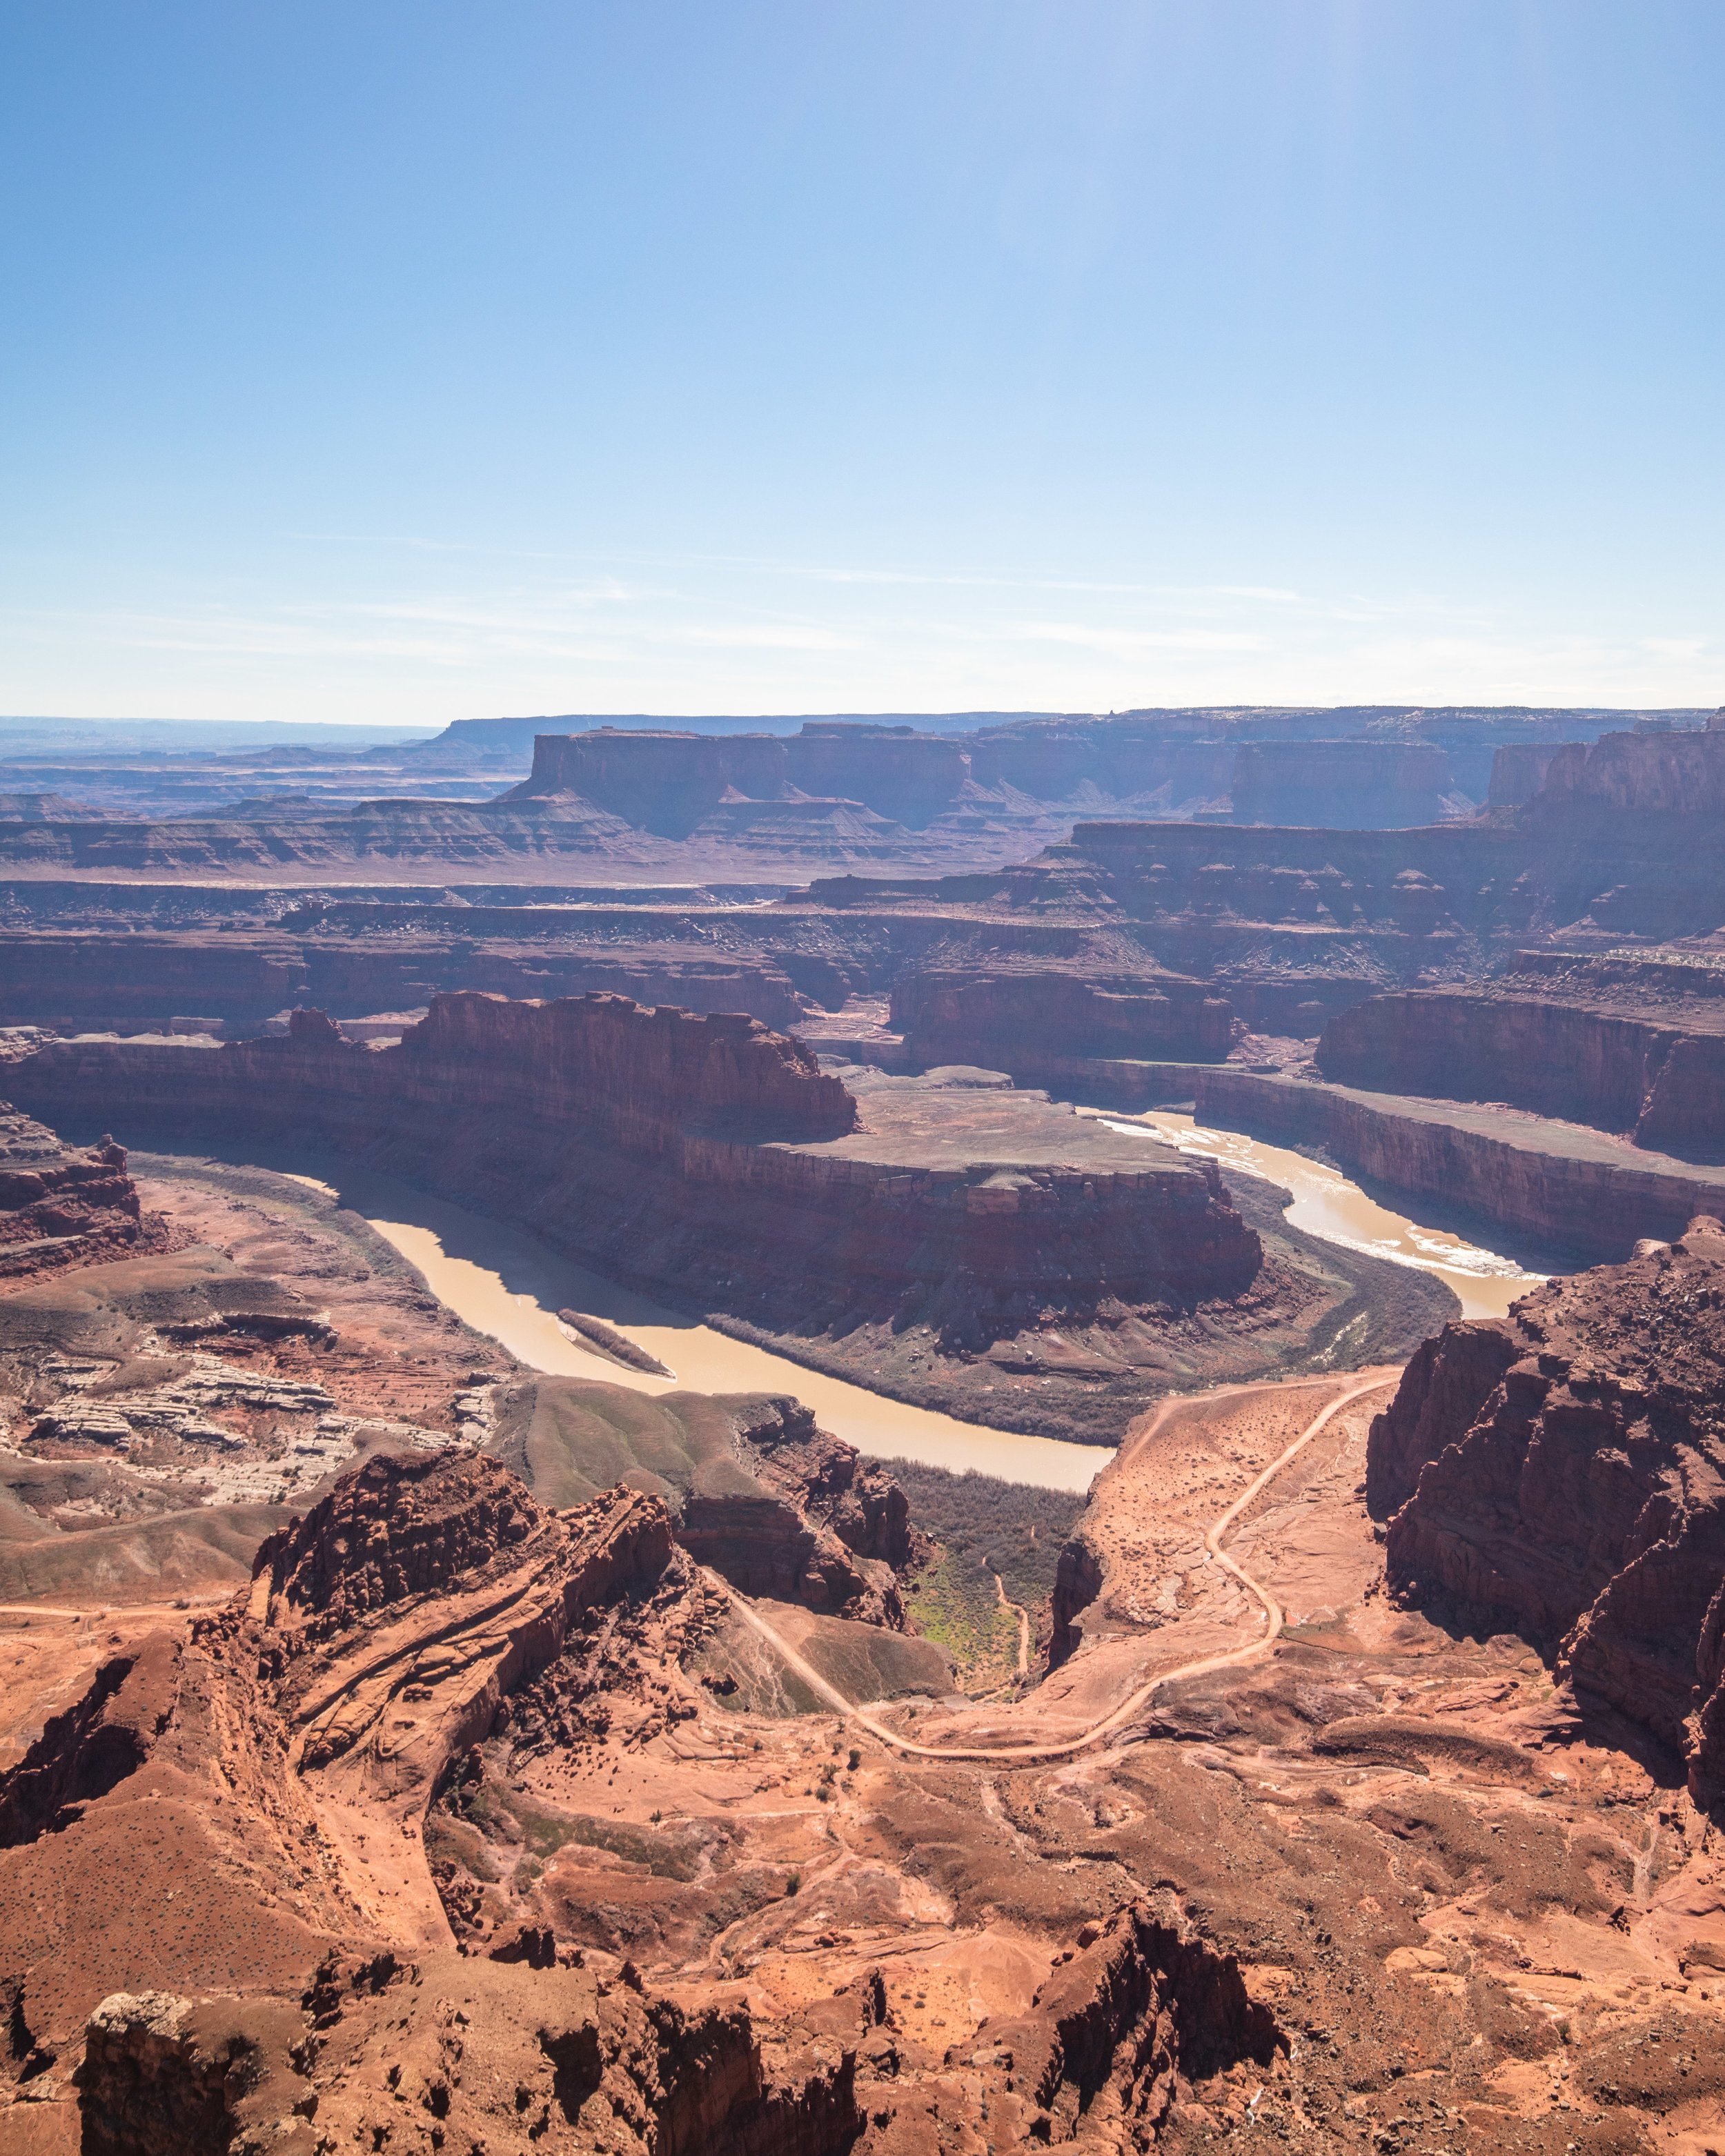 The view from Dead Horse Point Overlook